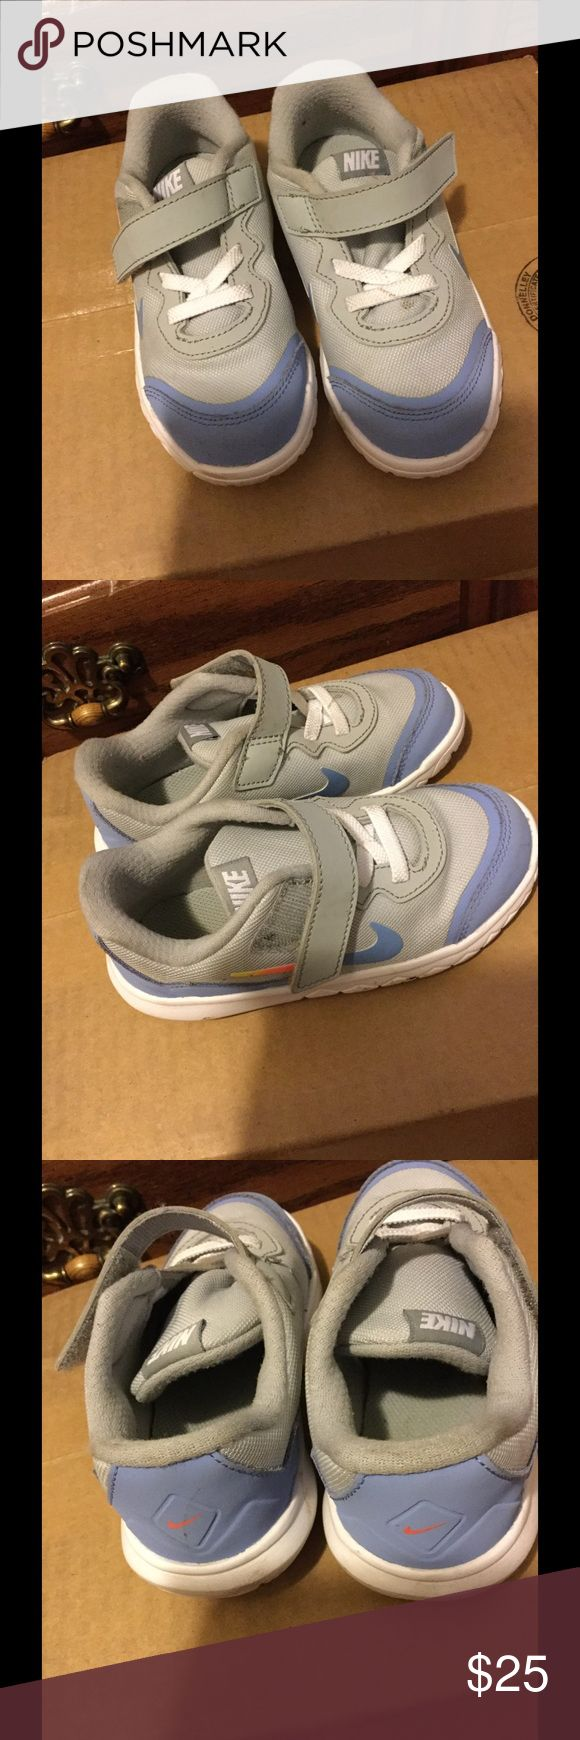 NIKE SHOES FOR KIDS! Sooooo freaking cute!!! Literally worn once! A little dirty but can easily be cleaned! Nike Shoes Sneakers